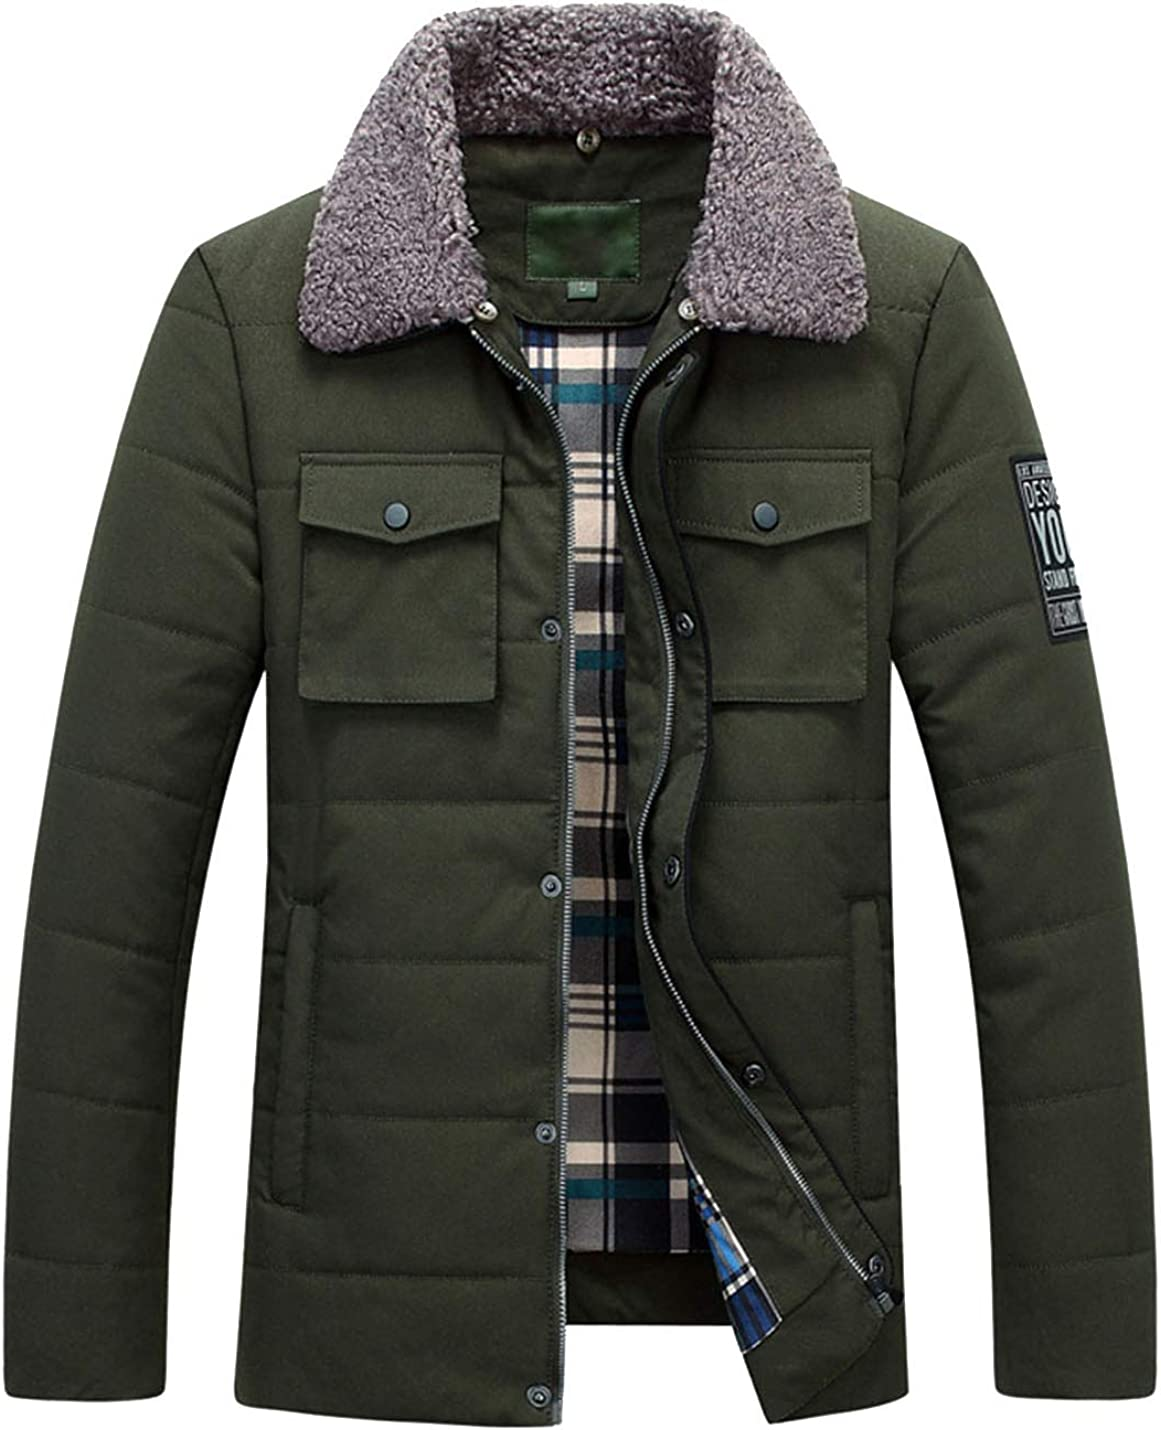 Lentta Mens Casual Zipper Button Quilted Cotton Padded Puffy Jacket Coat Pocket